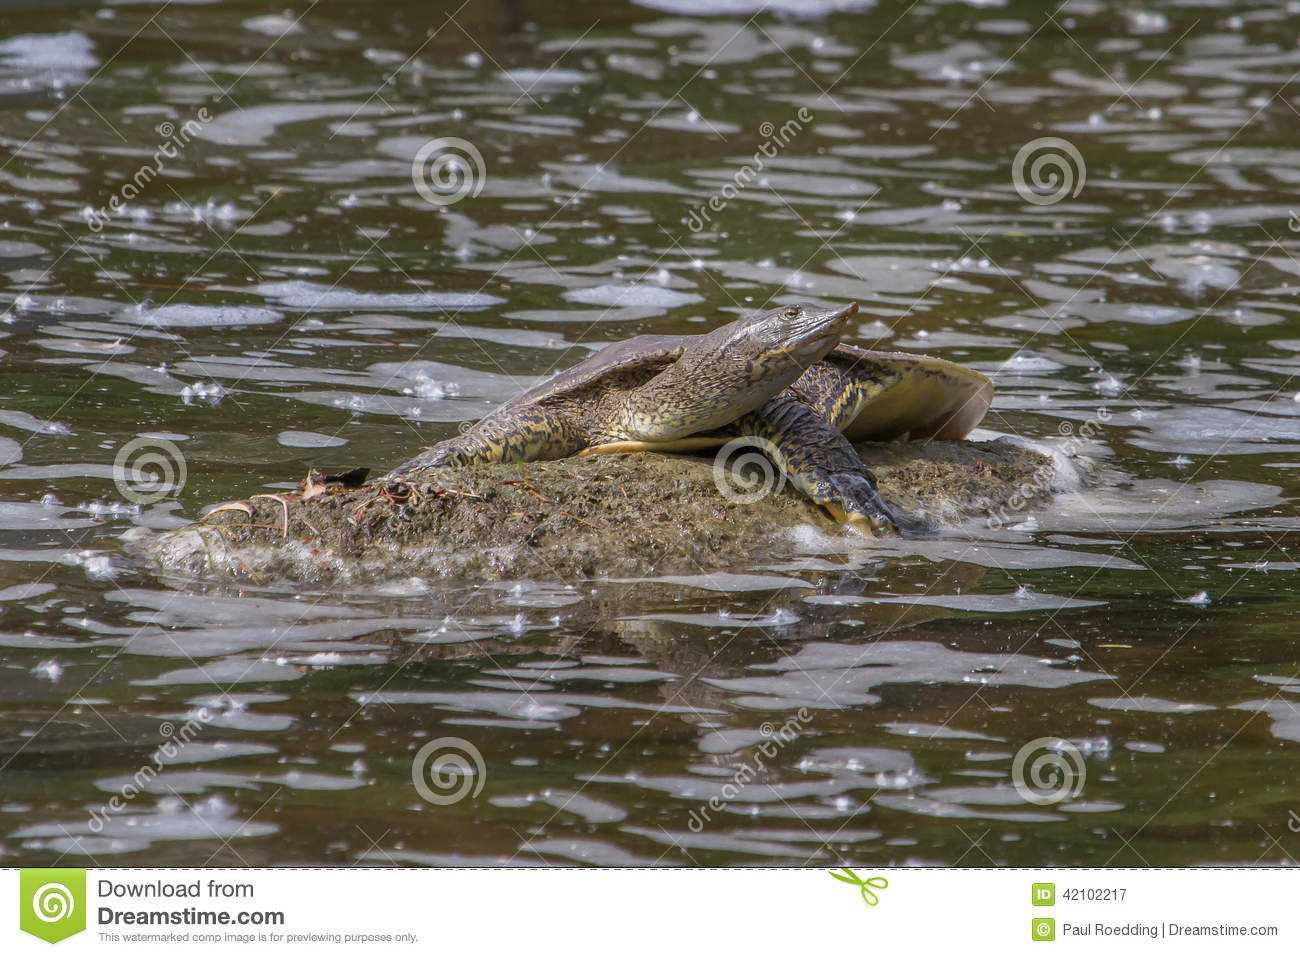 Eastern Spiny Softshell Turtle Stock Photo - Image: 42102217